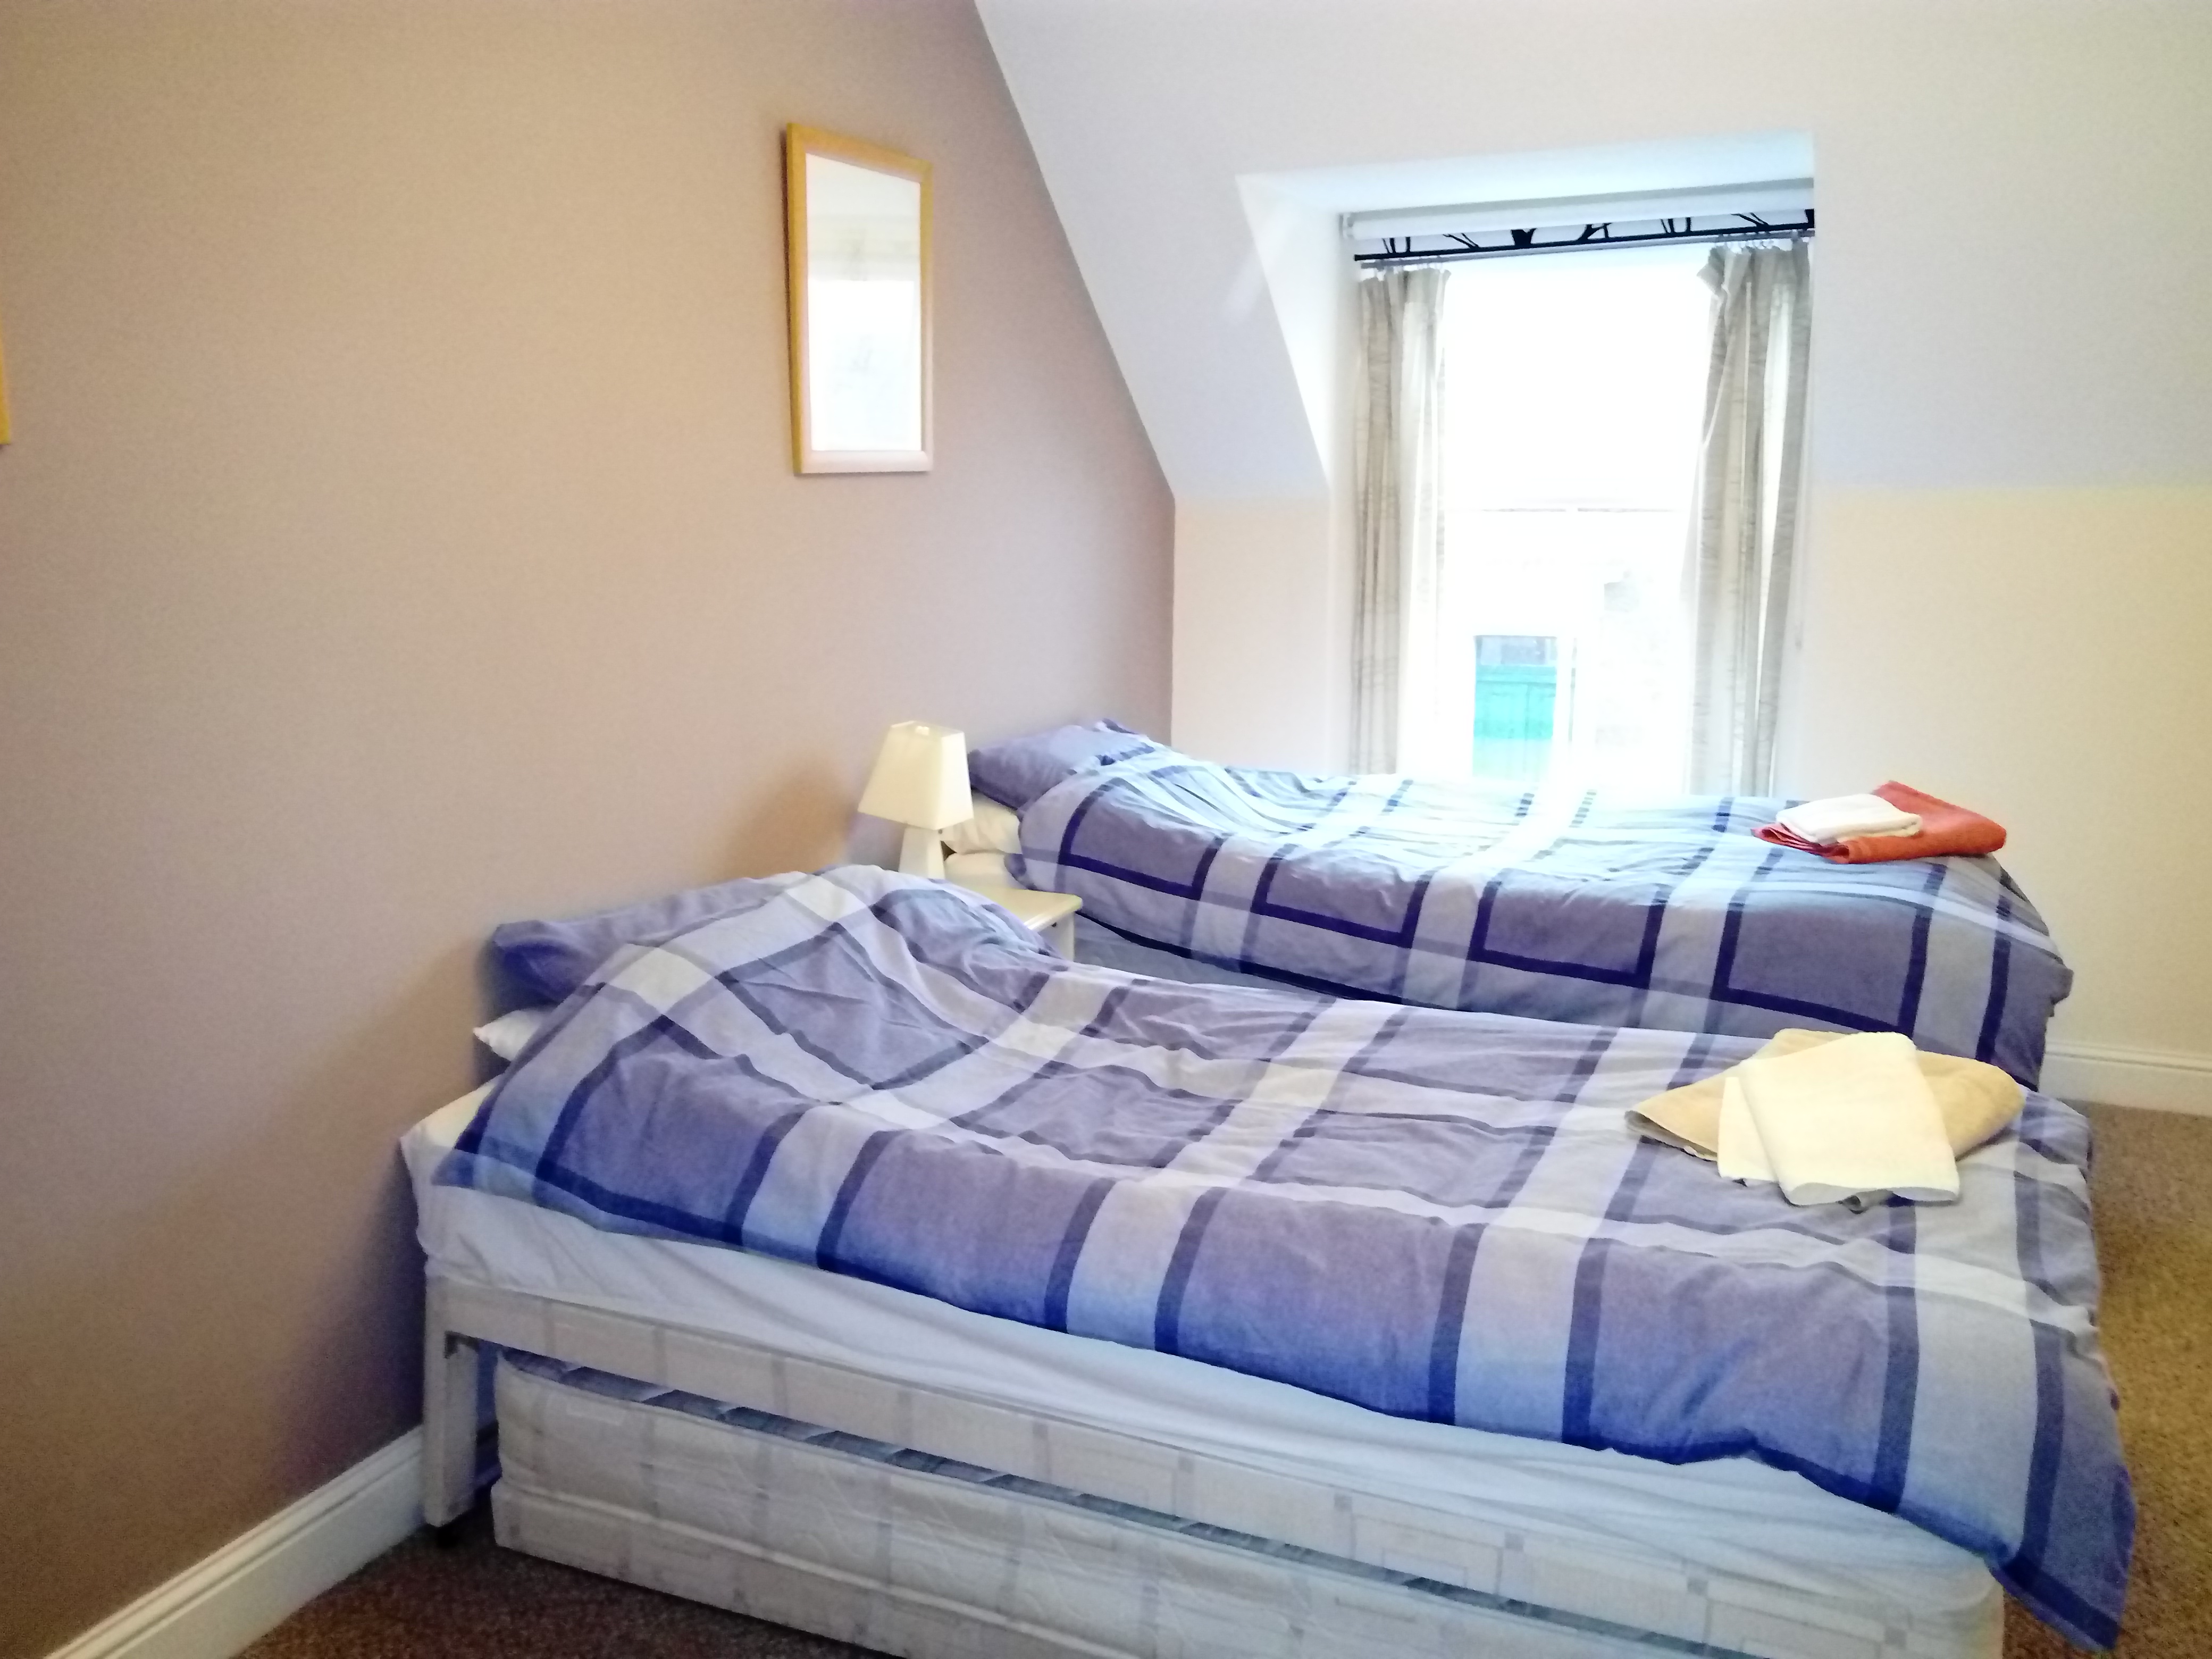 Twin bedded room which also equipped with a 3rd pull out bed